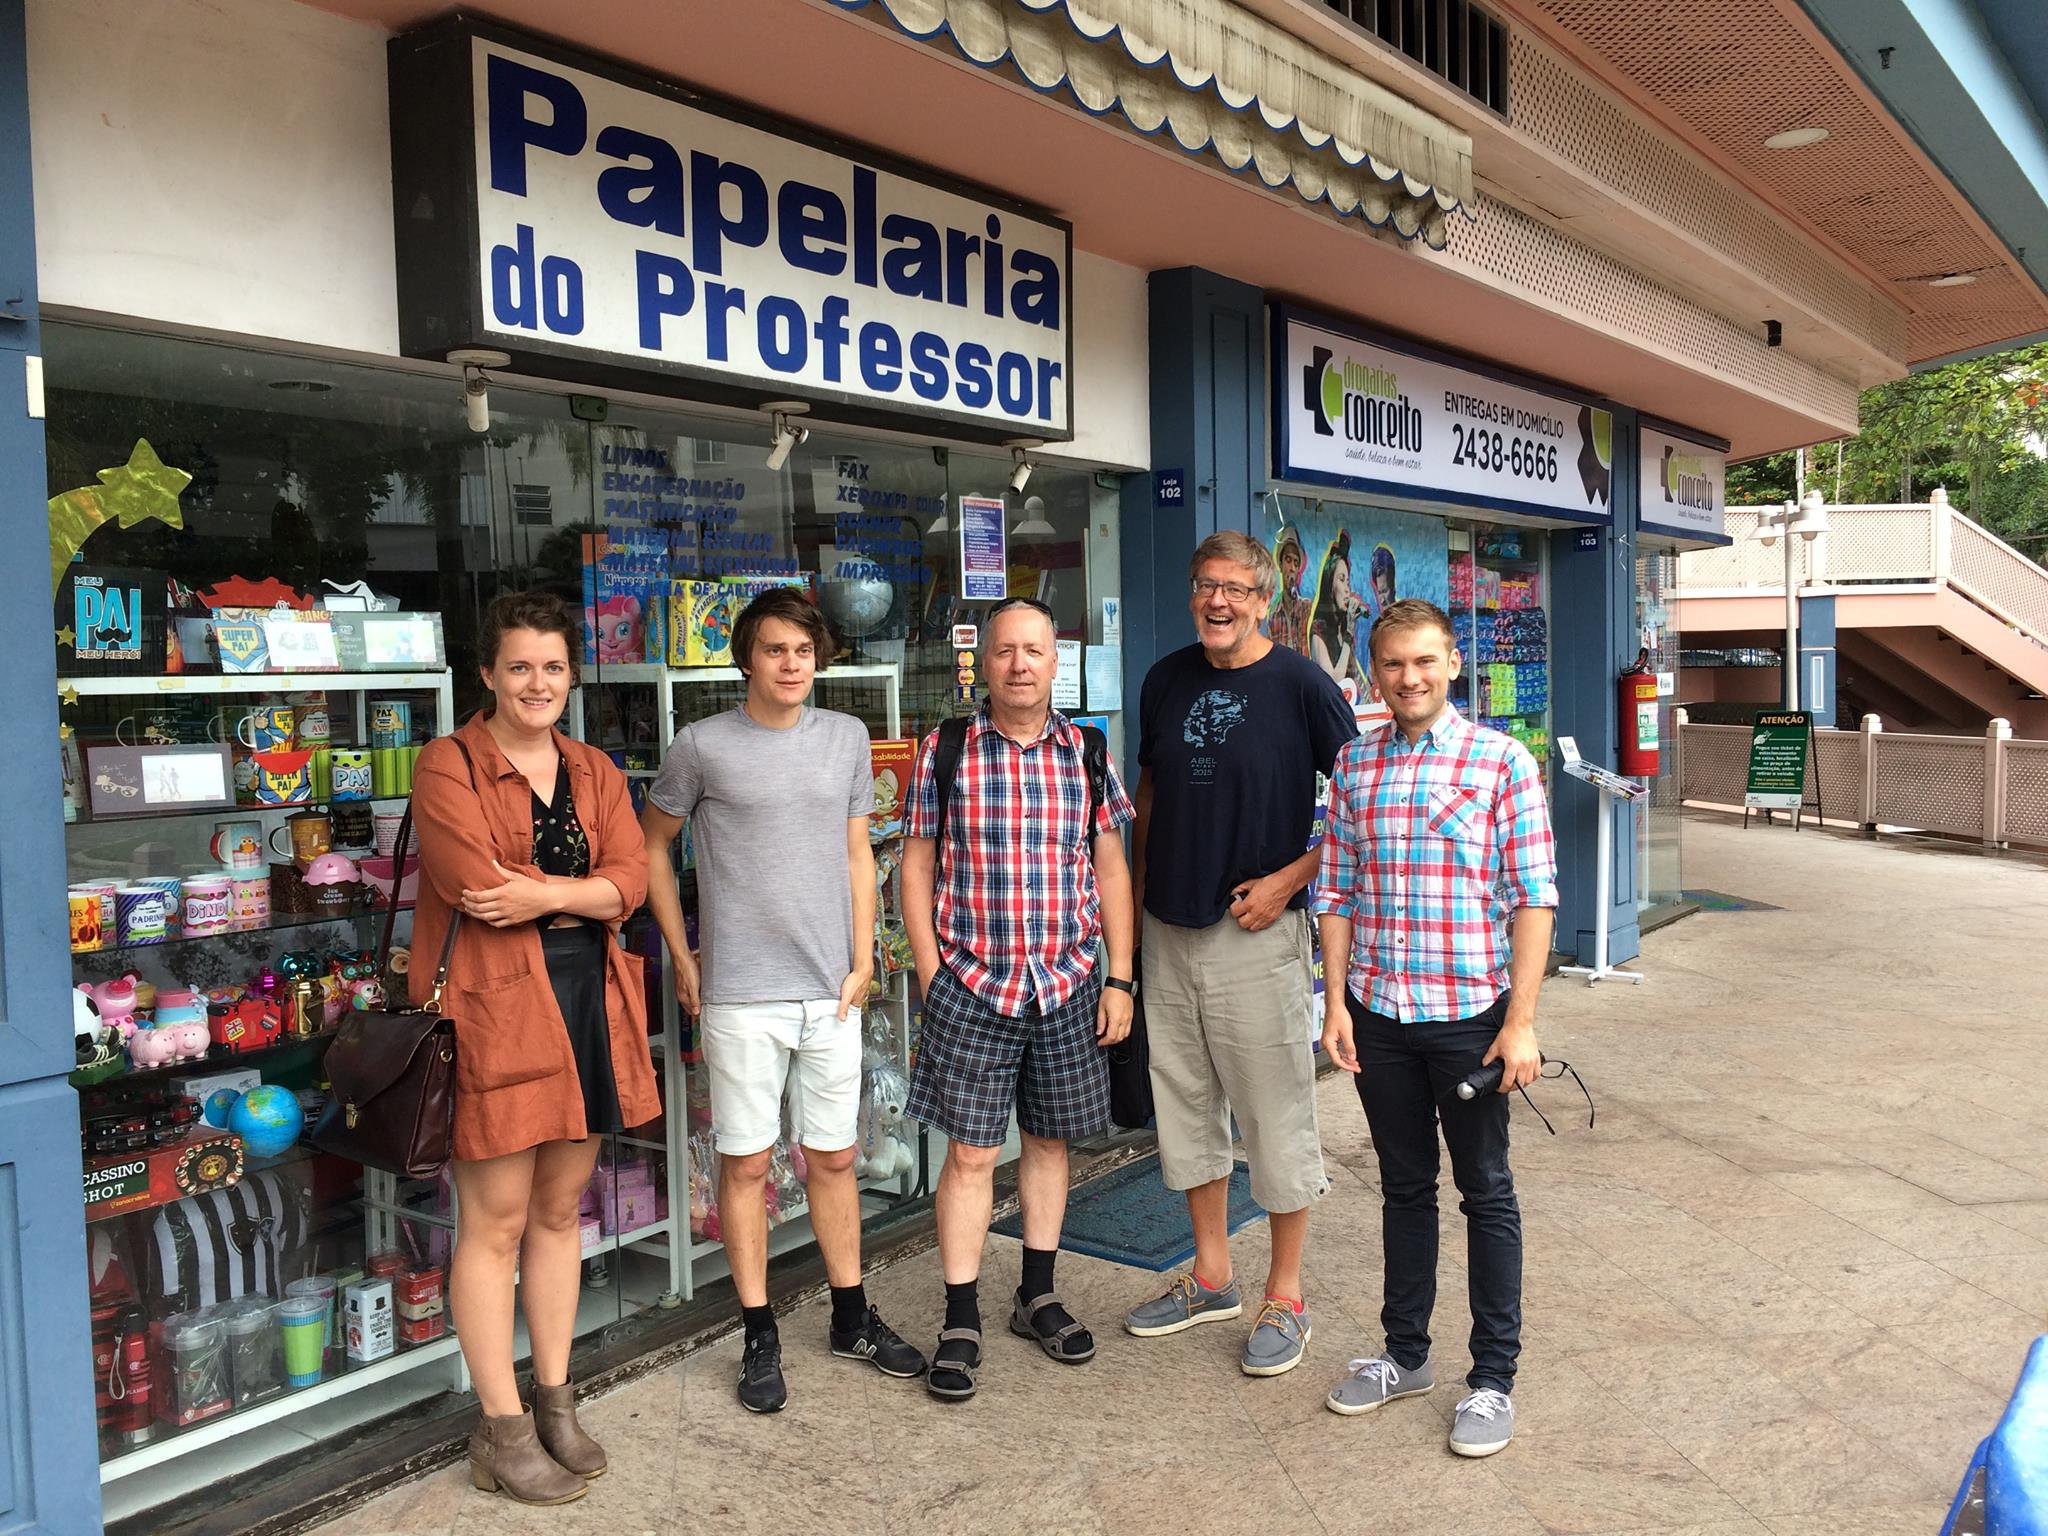 The FocuStat group in Rio